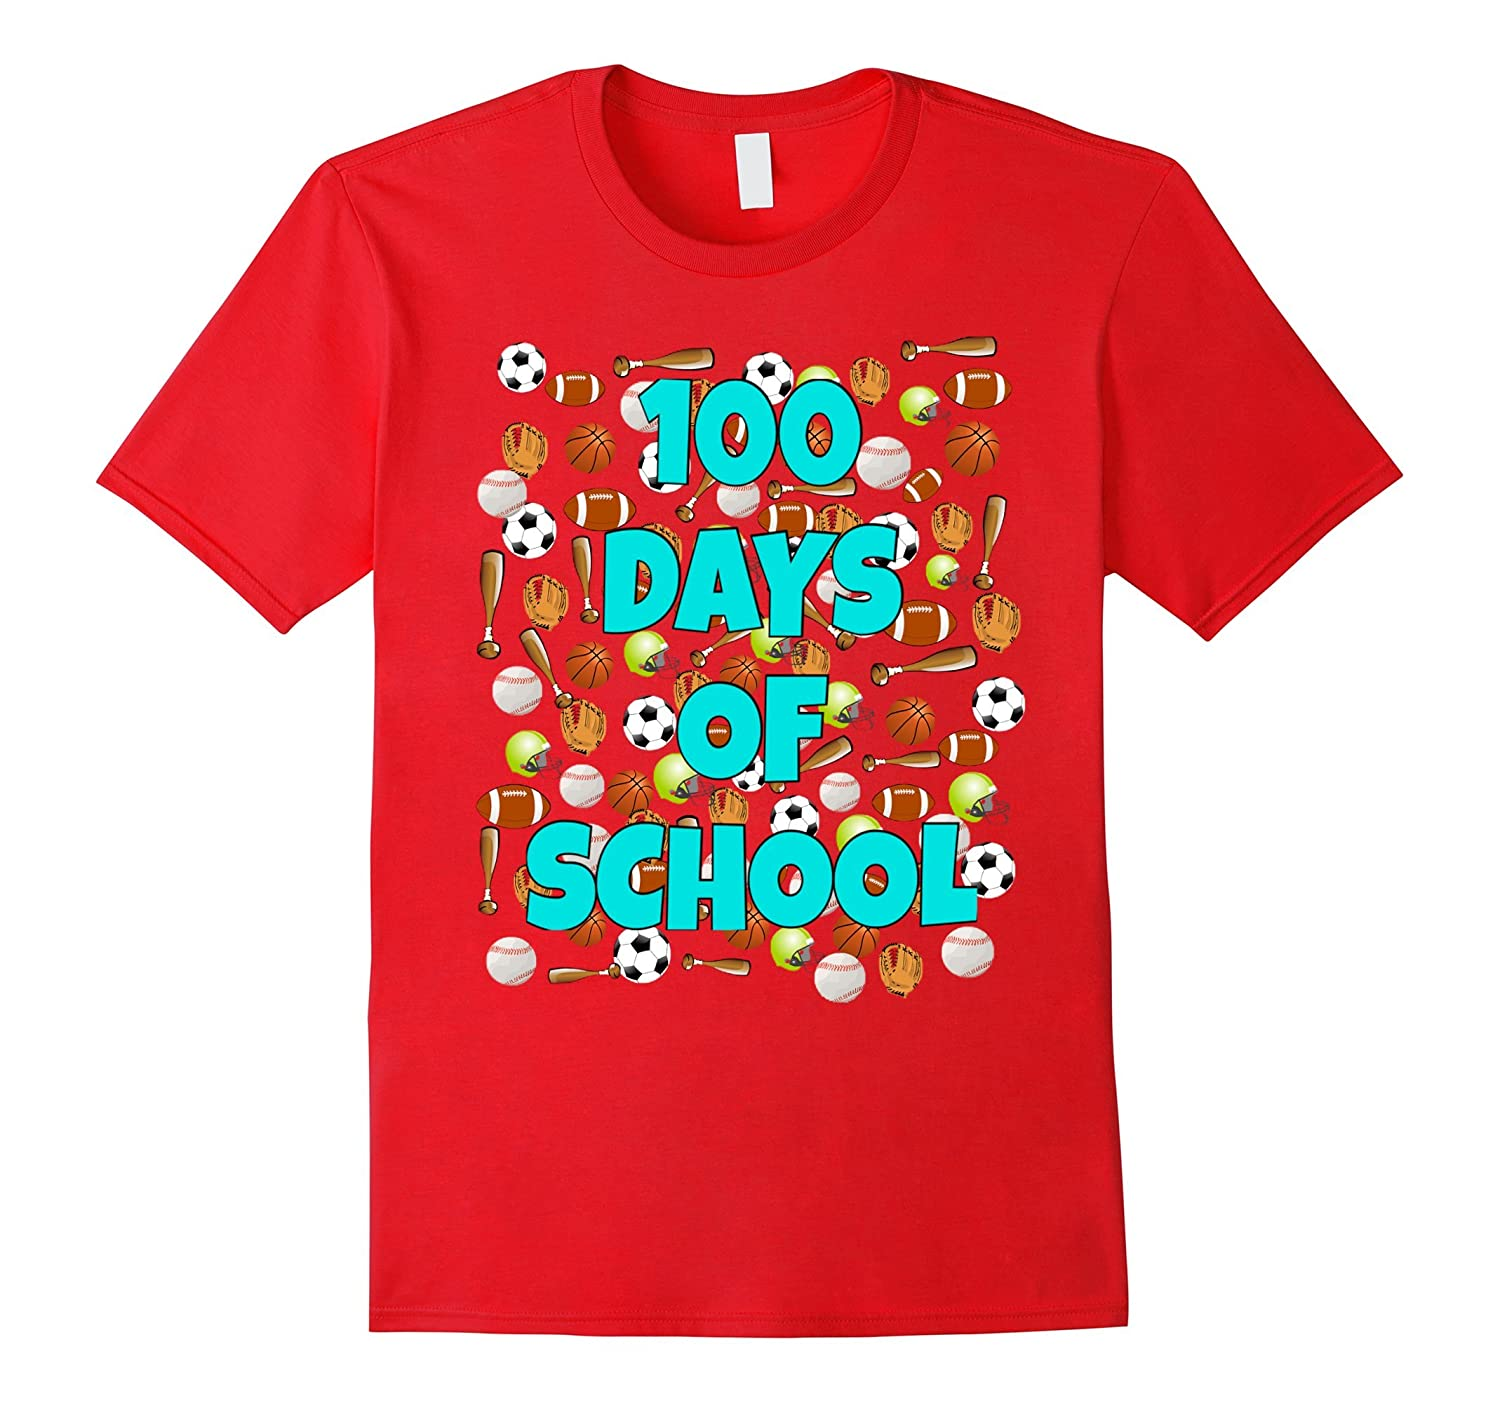 100 Days of School T Shirt for kids or teachers - Sports-ah my shirt one gift